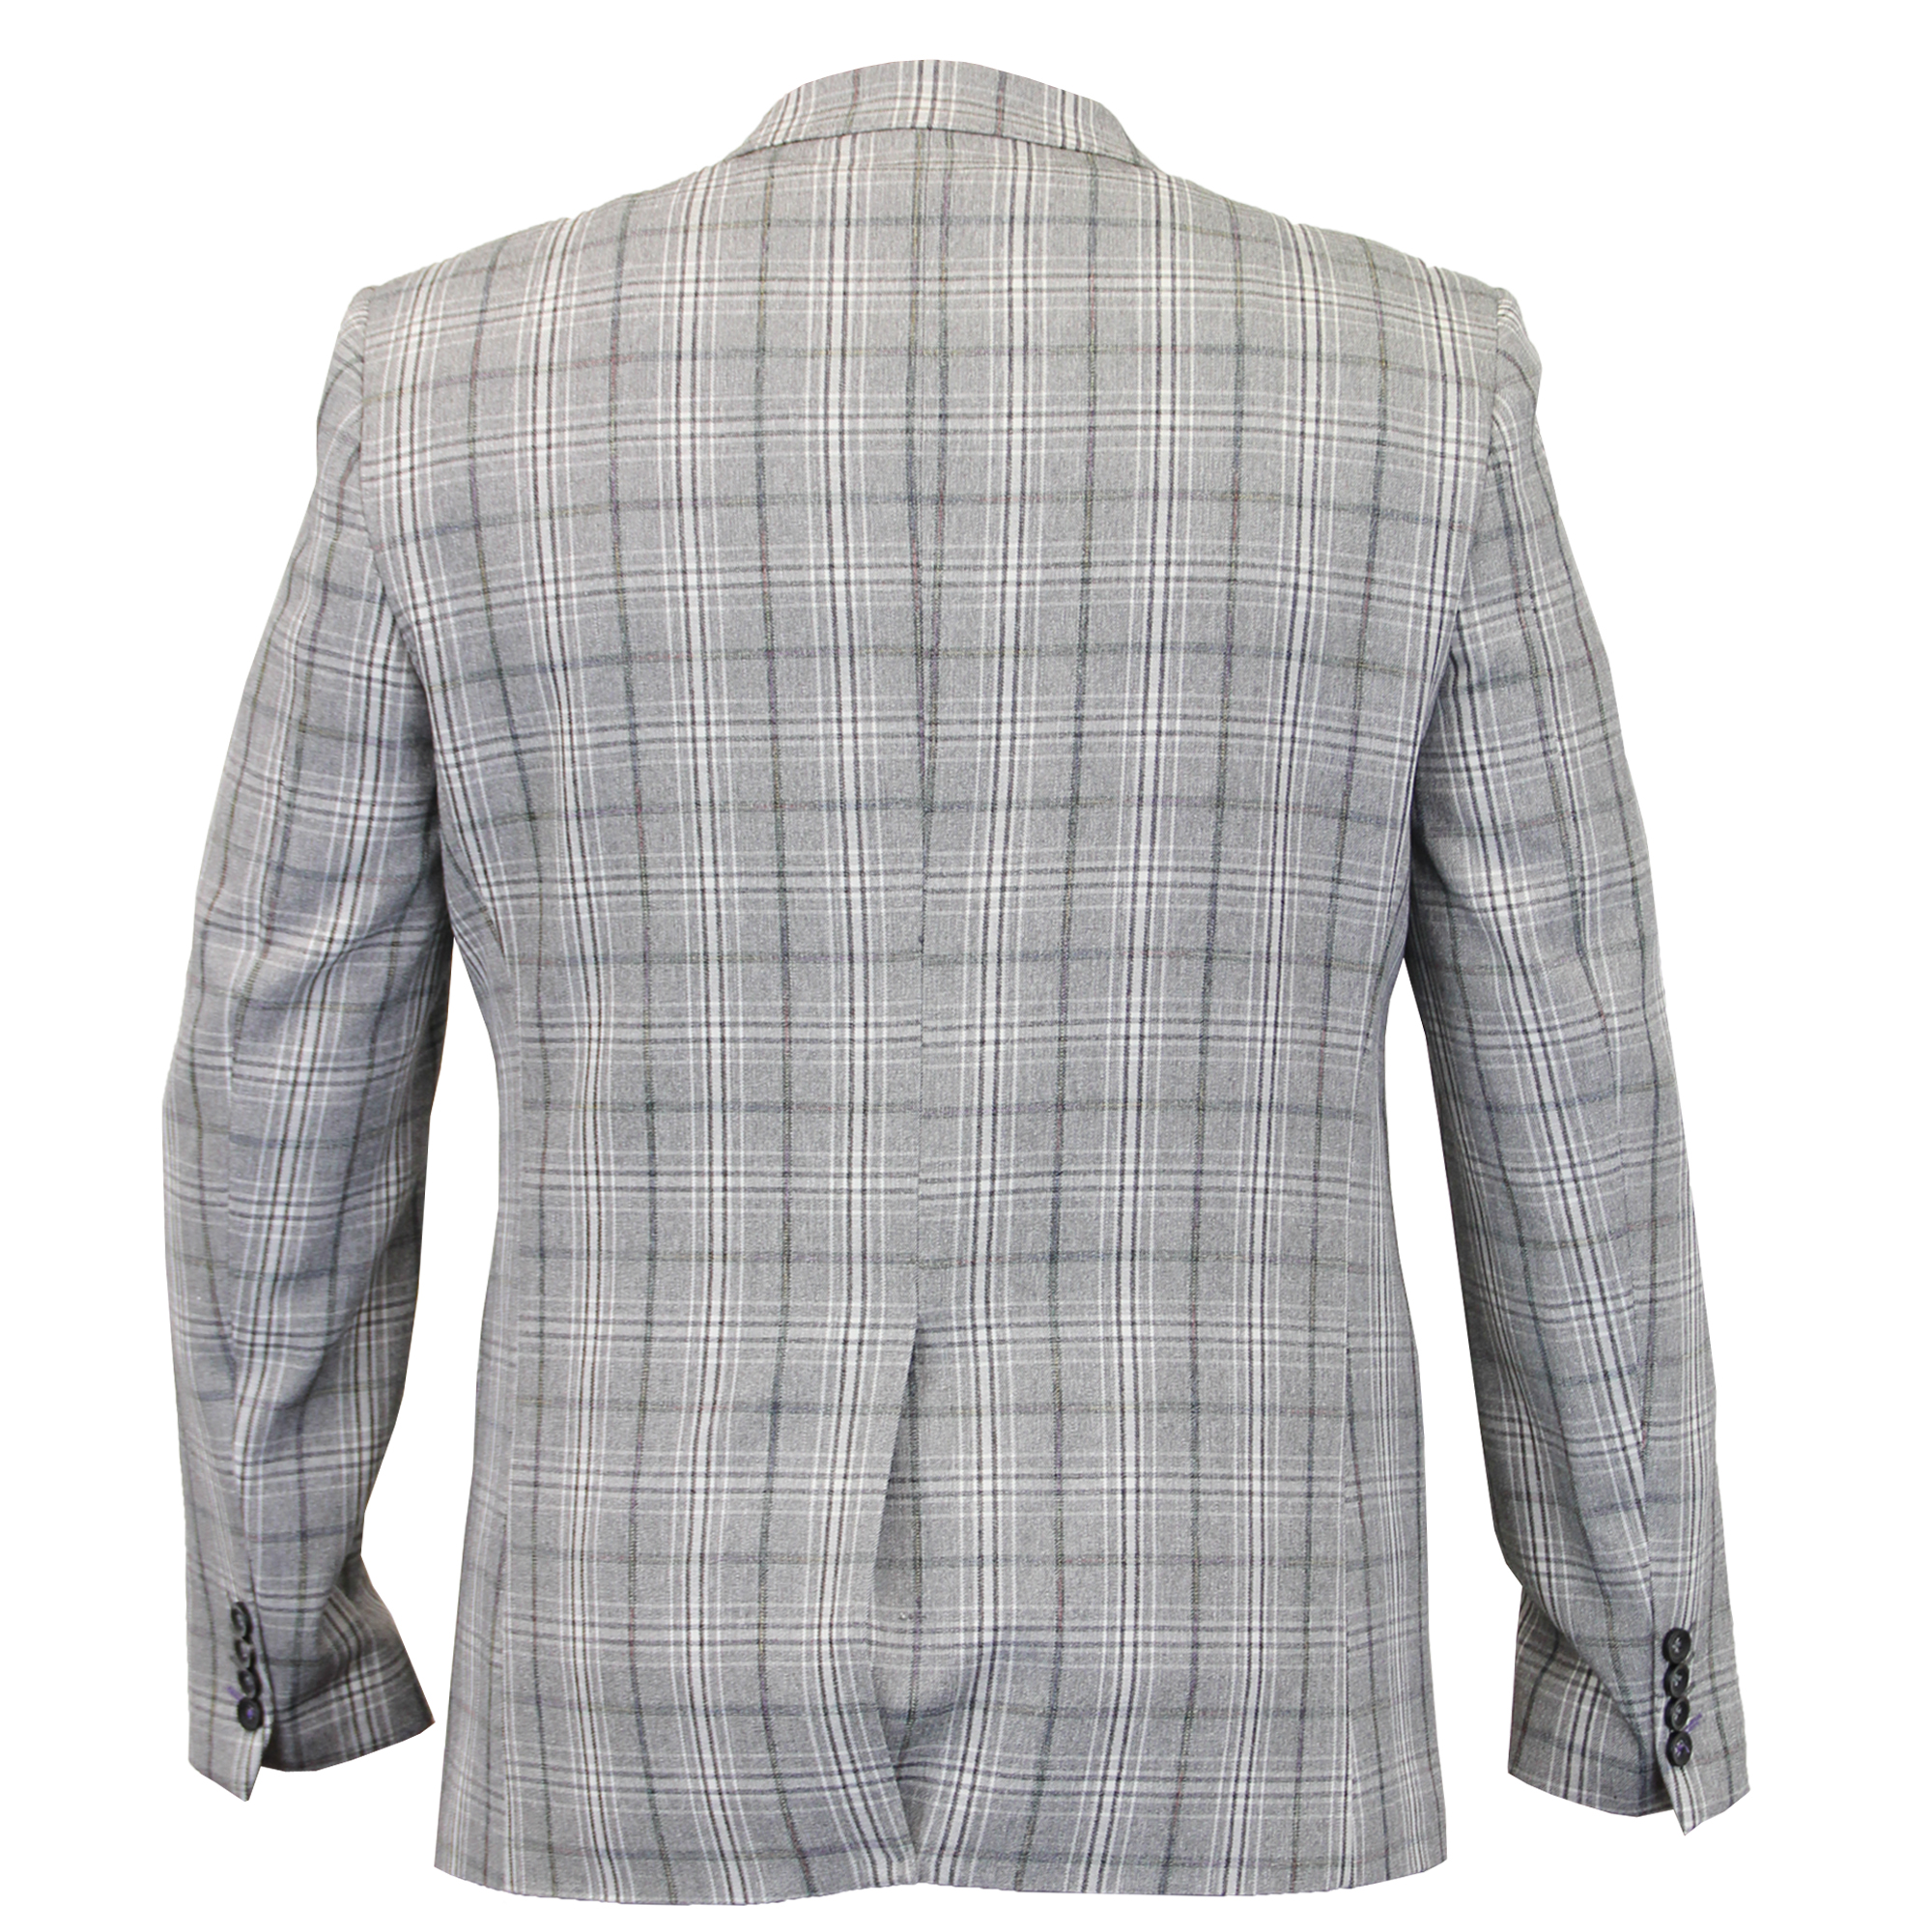 Shop the Latest Collection of Slim Fit Blazers & Sports Coats for Men Online at hereffil53.cf FREE SHIPPING AVAILABLE!